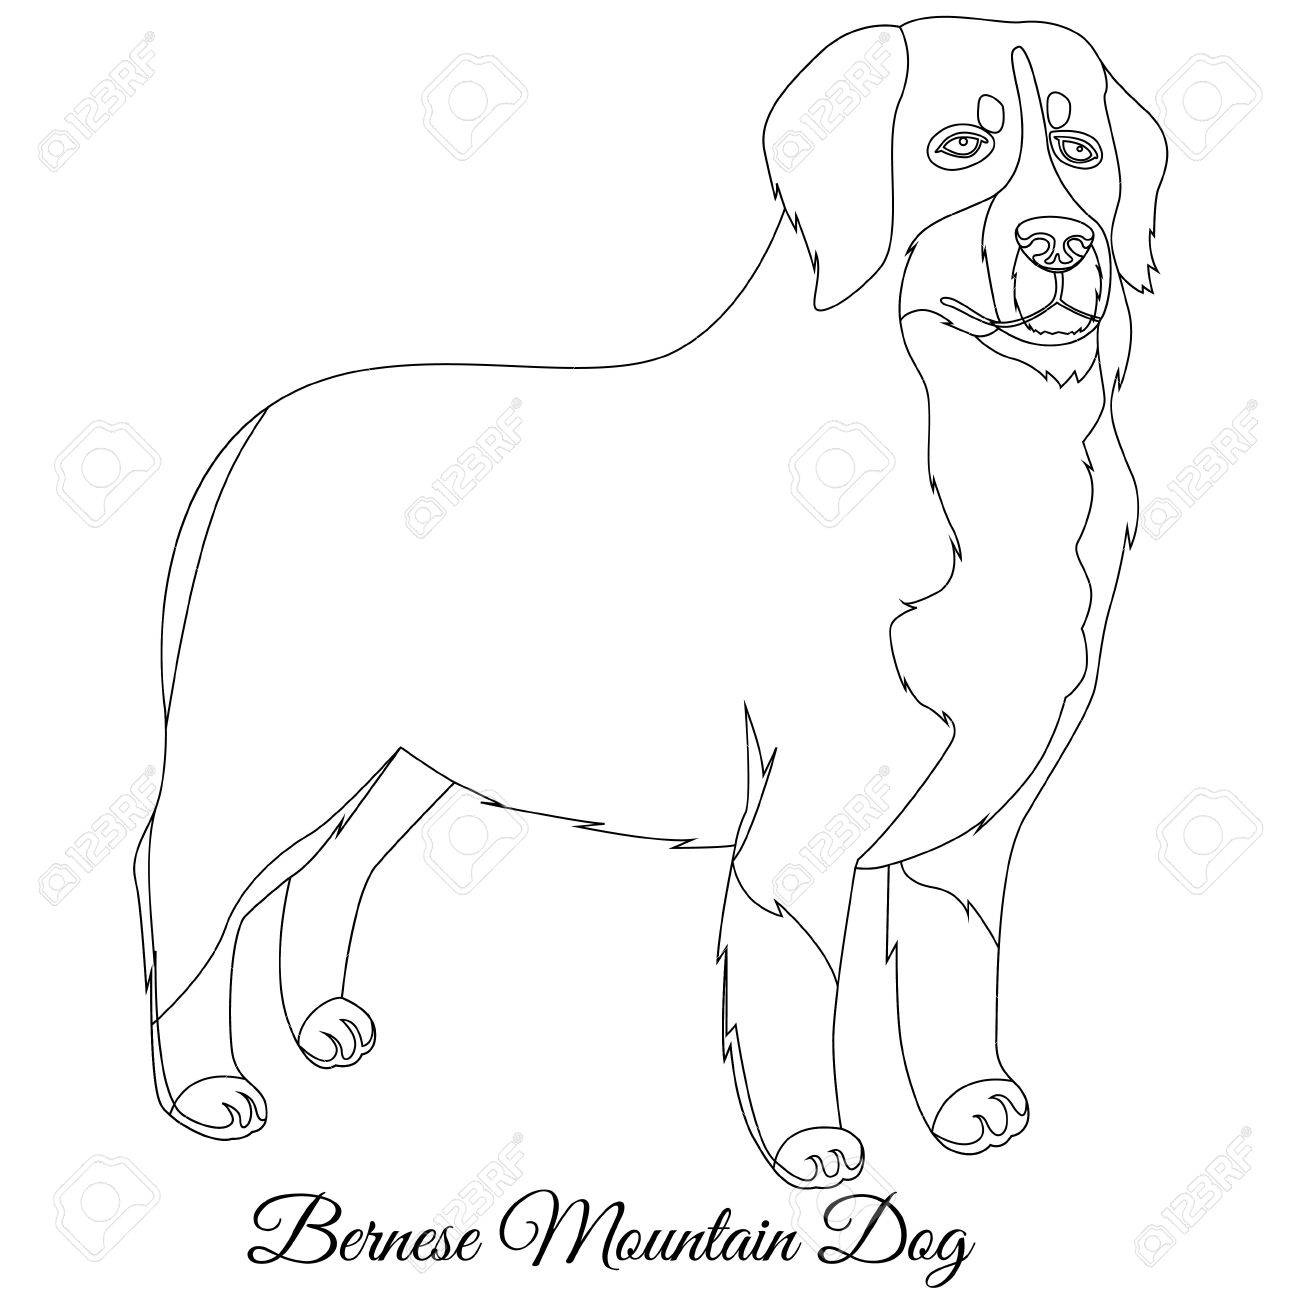 1300x1300 Bernese Mountain Dog Outline Vector Illustration Royalty Free